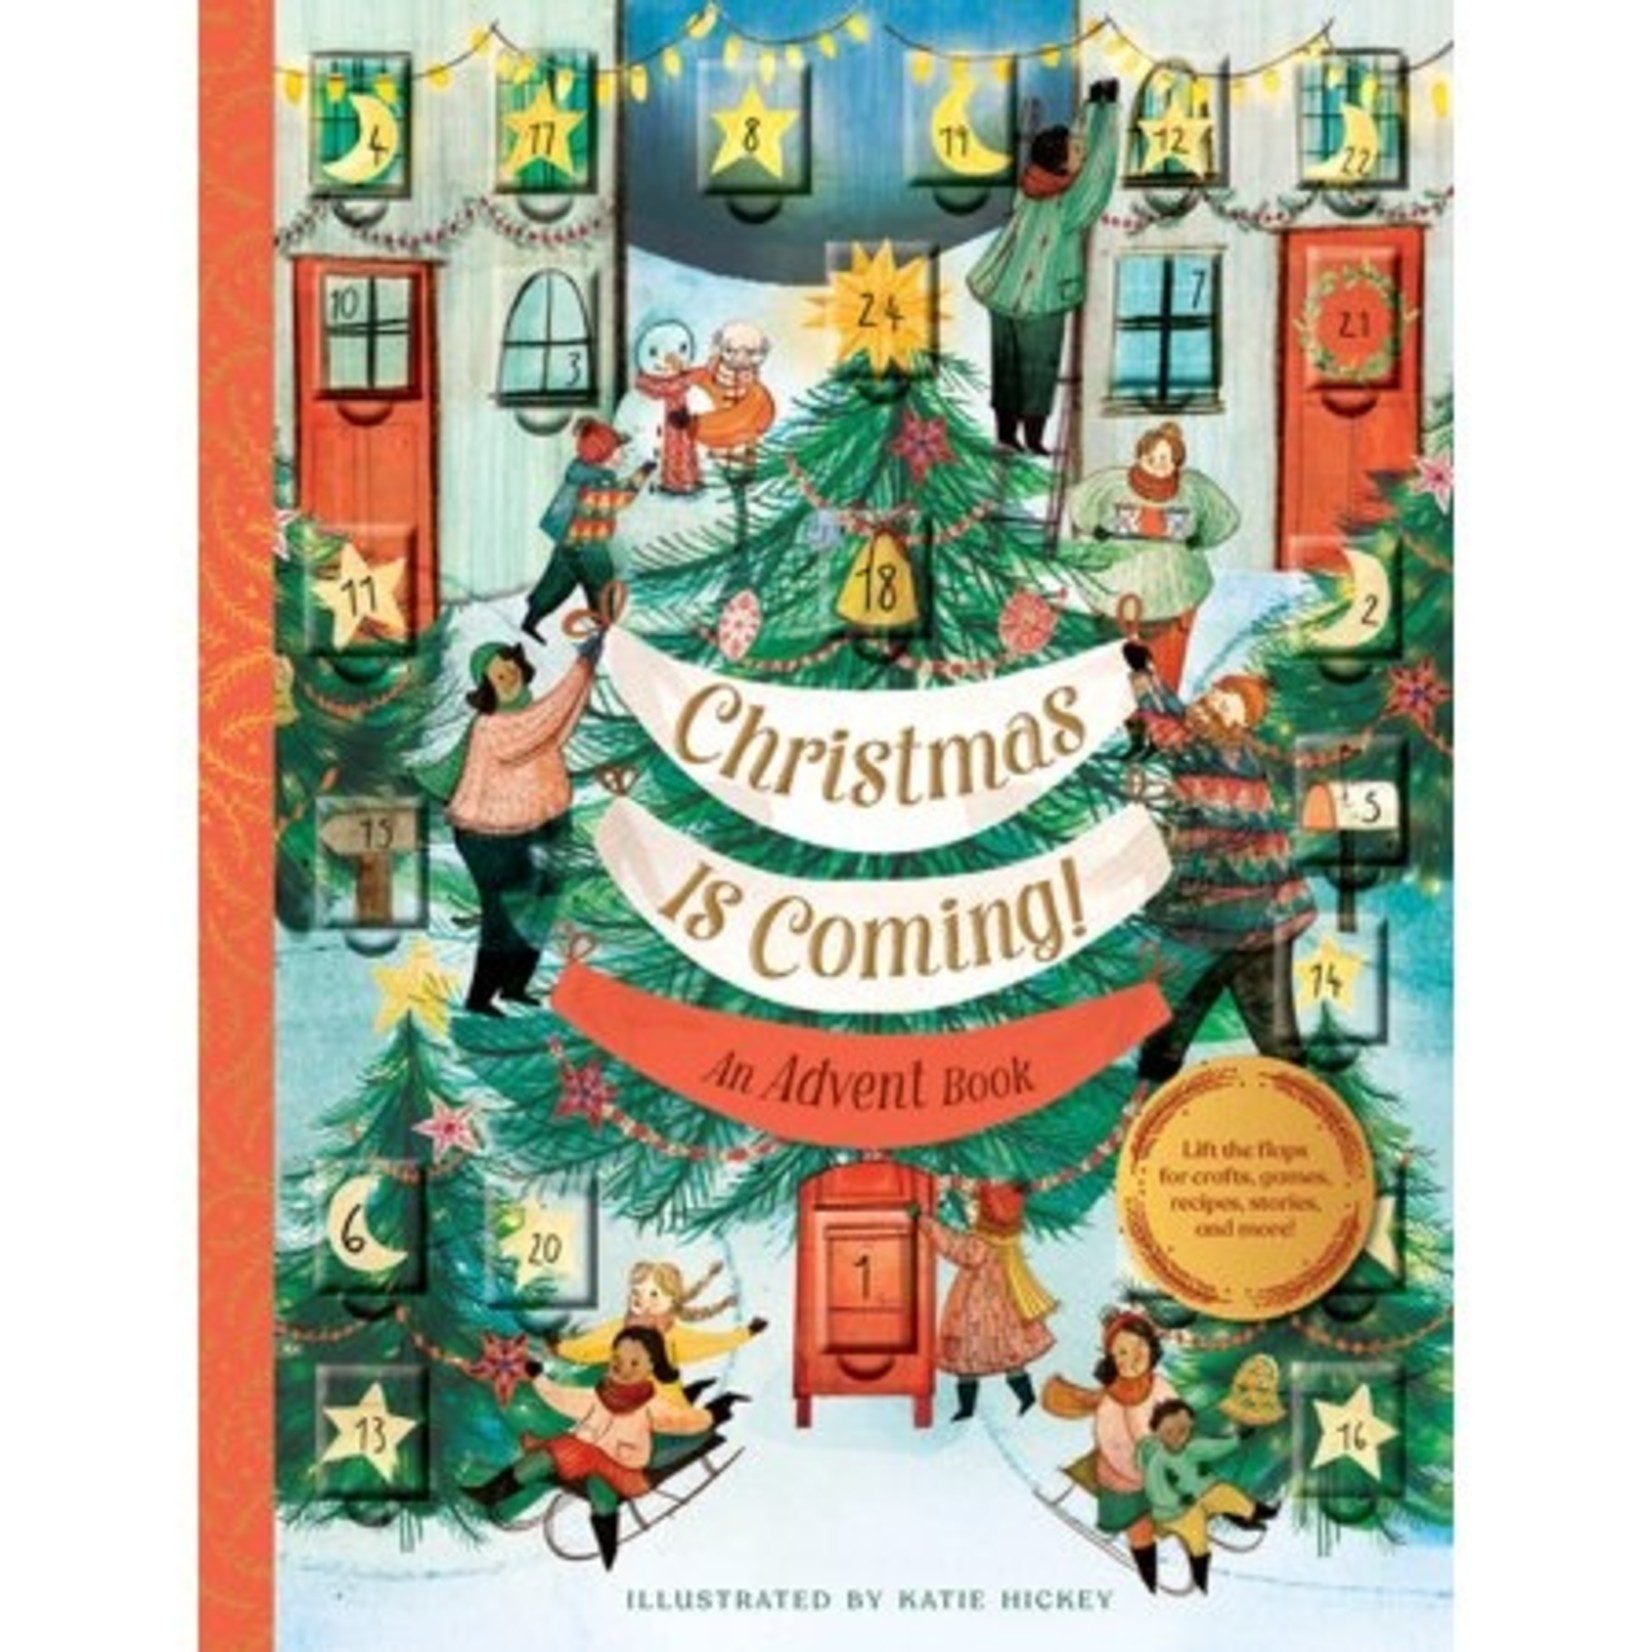 Christmas is Coming: An Advent Book